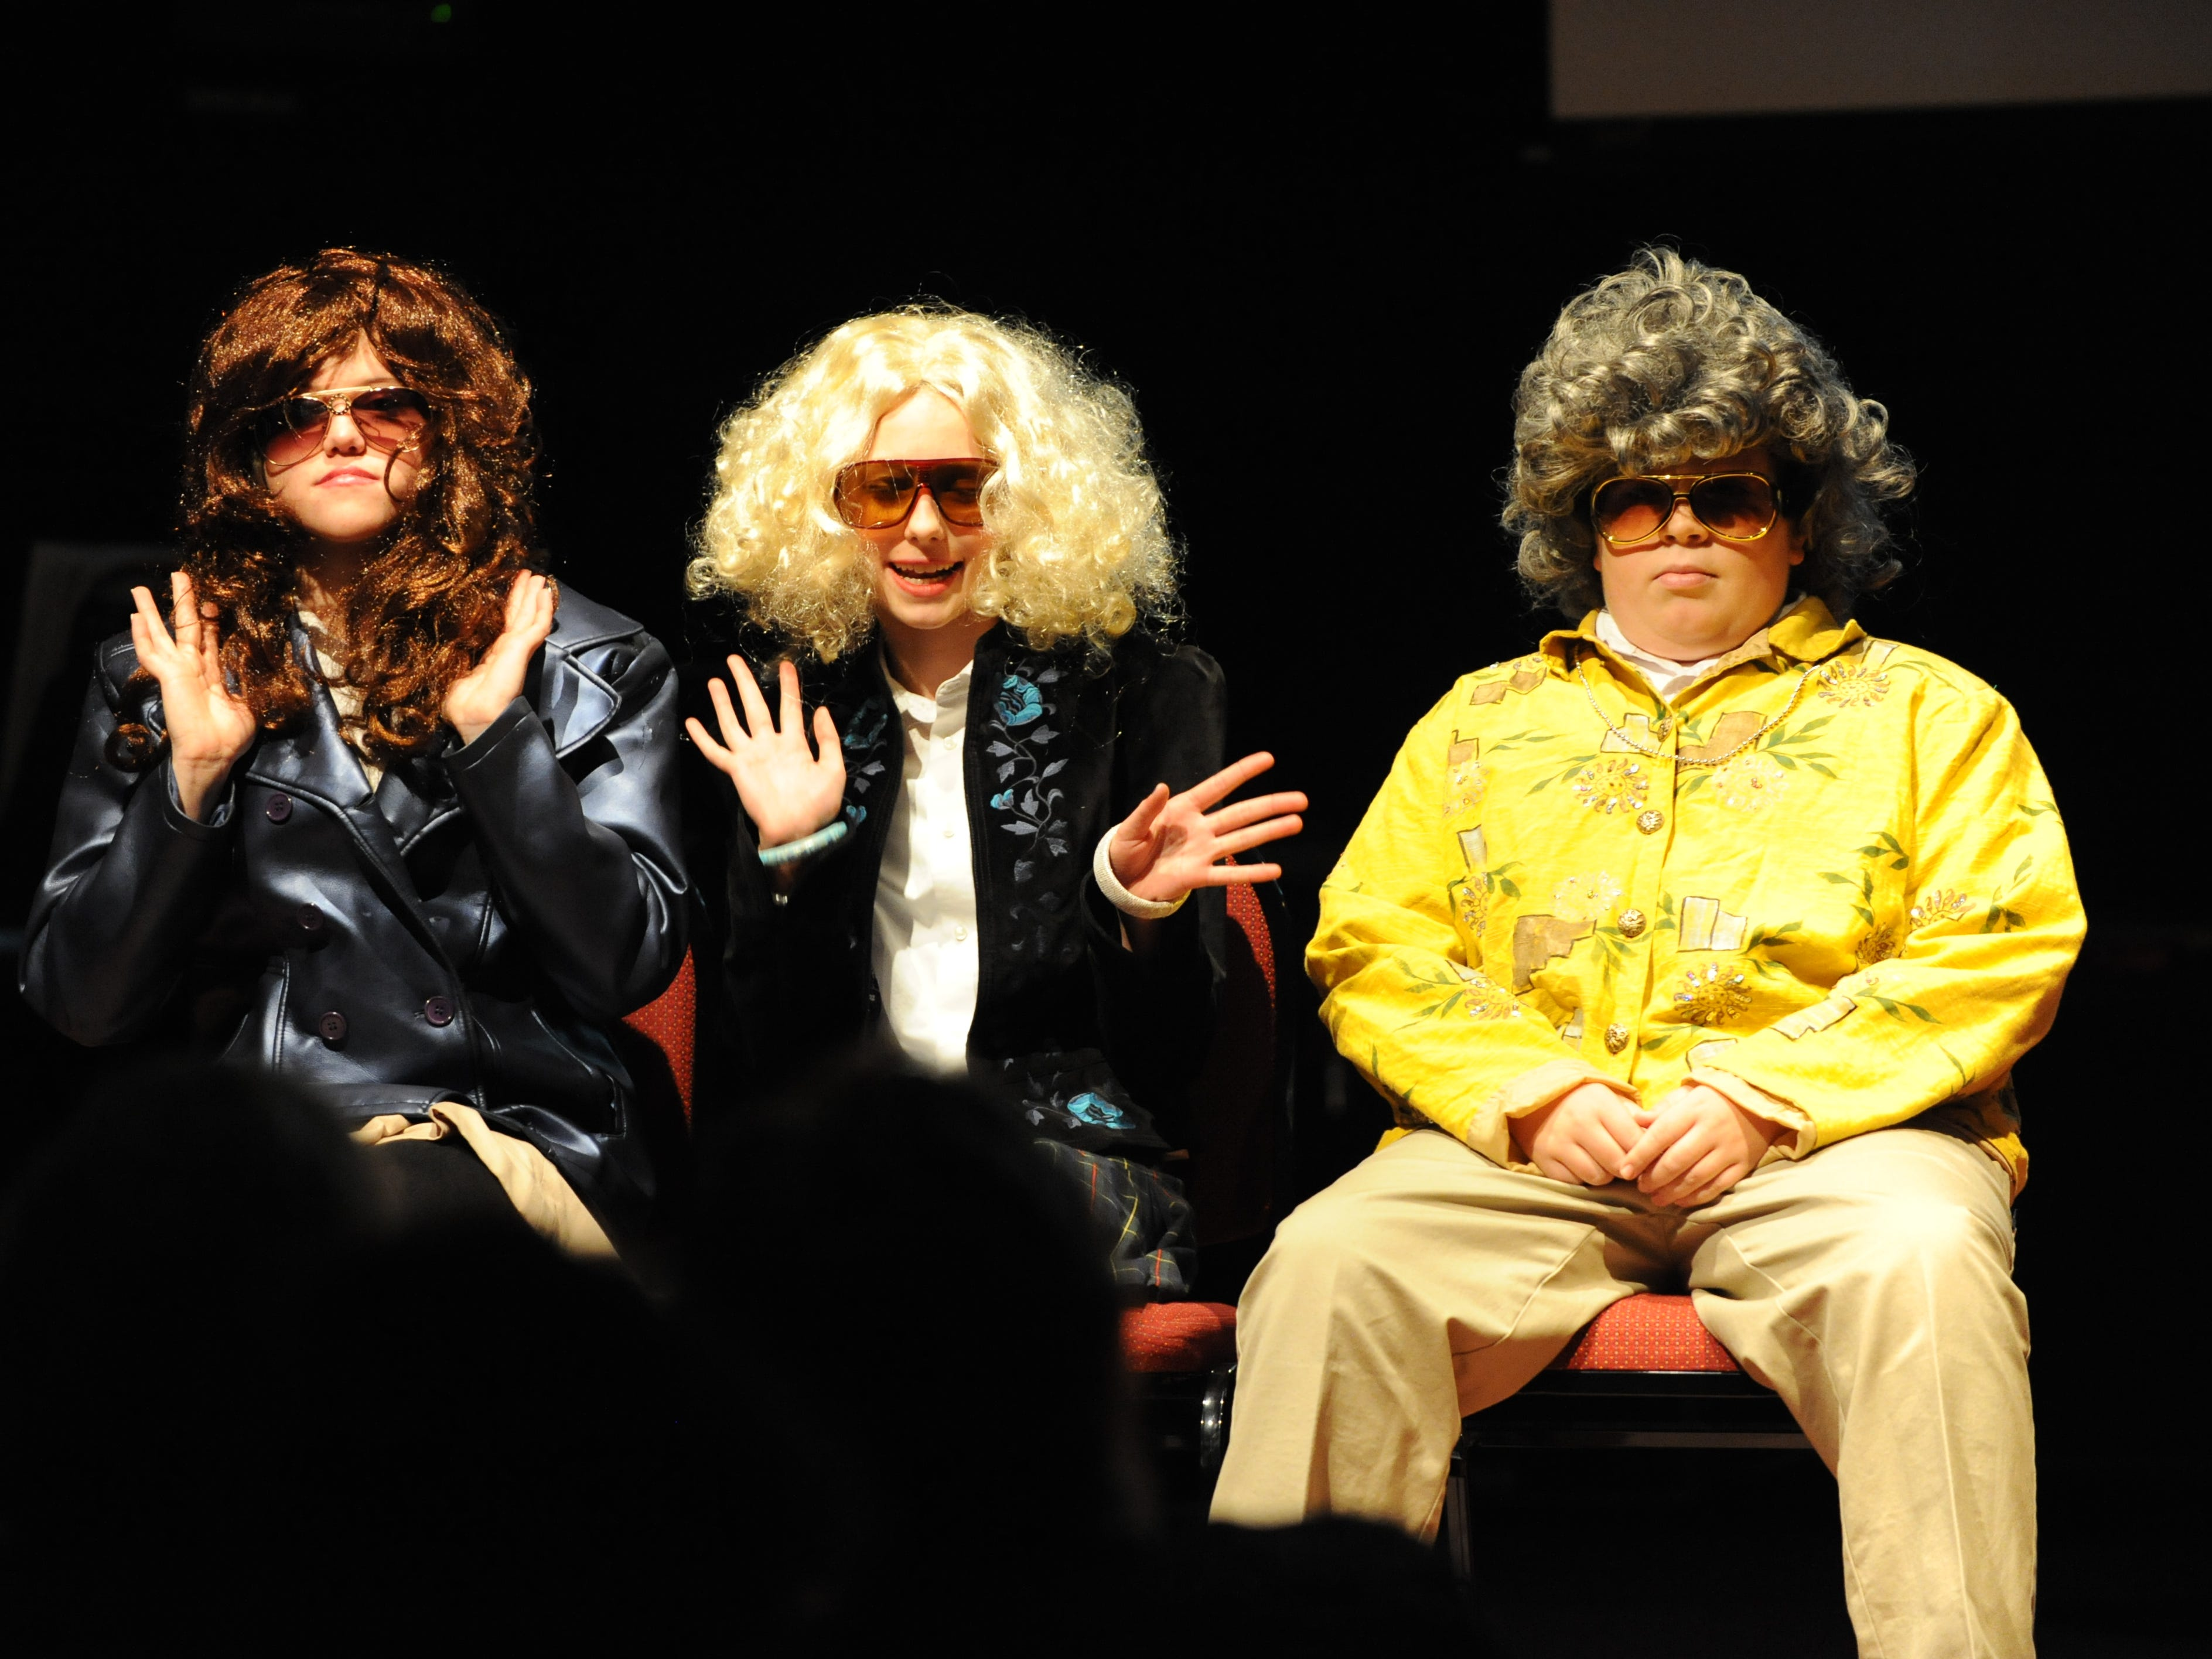 """Currey Ingram middle school theater students Natasha Rollins, Carson McConnell and Brody Ollech showcase a skit from """"Saturday Night Live"""" during the semiannual Fine Arts Celebration in 2013 ."""